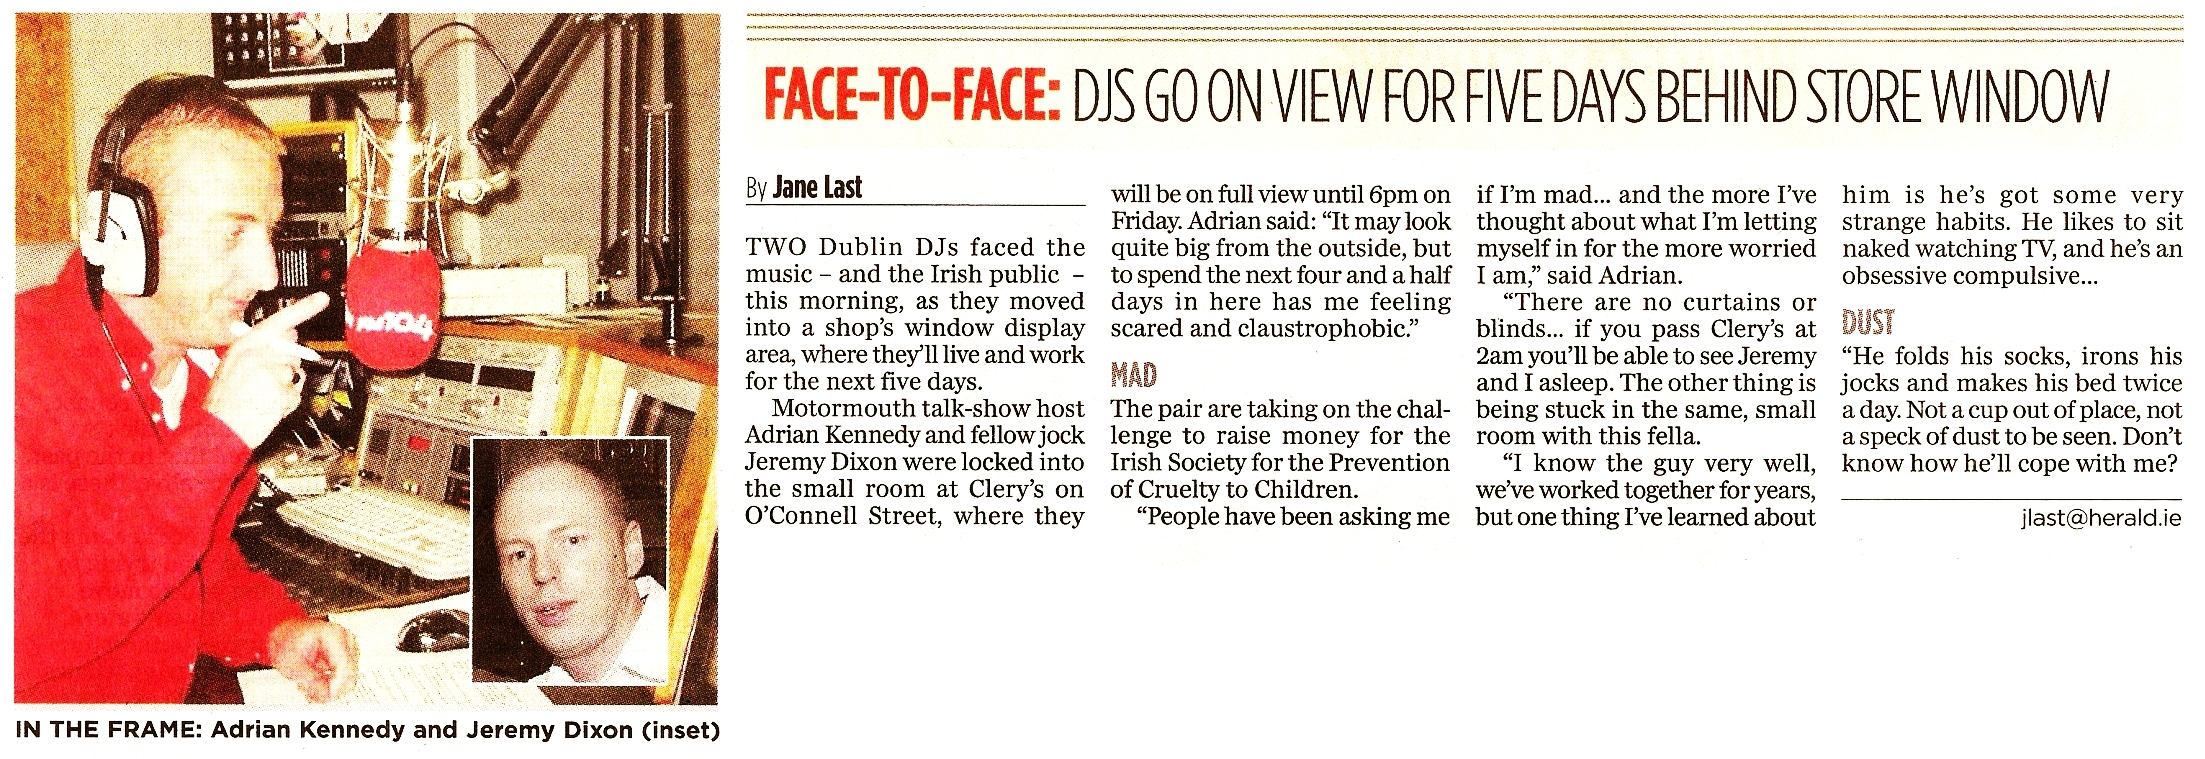 Evening Herald - Face to face